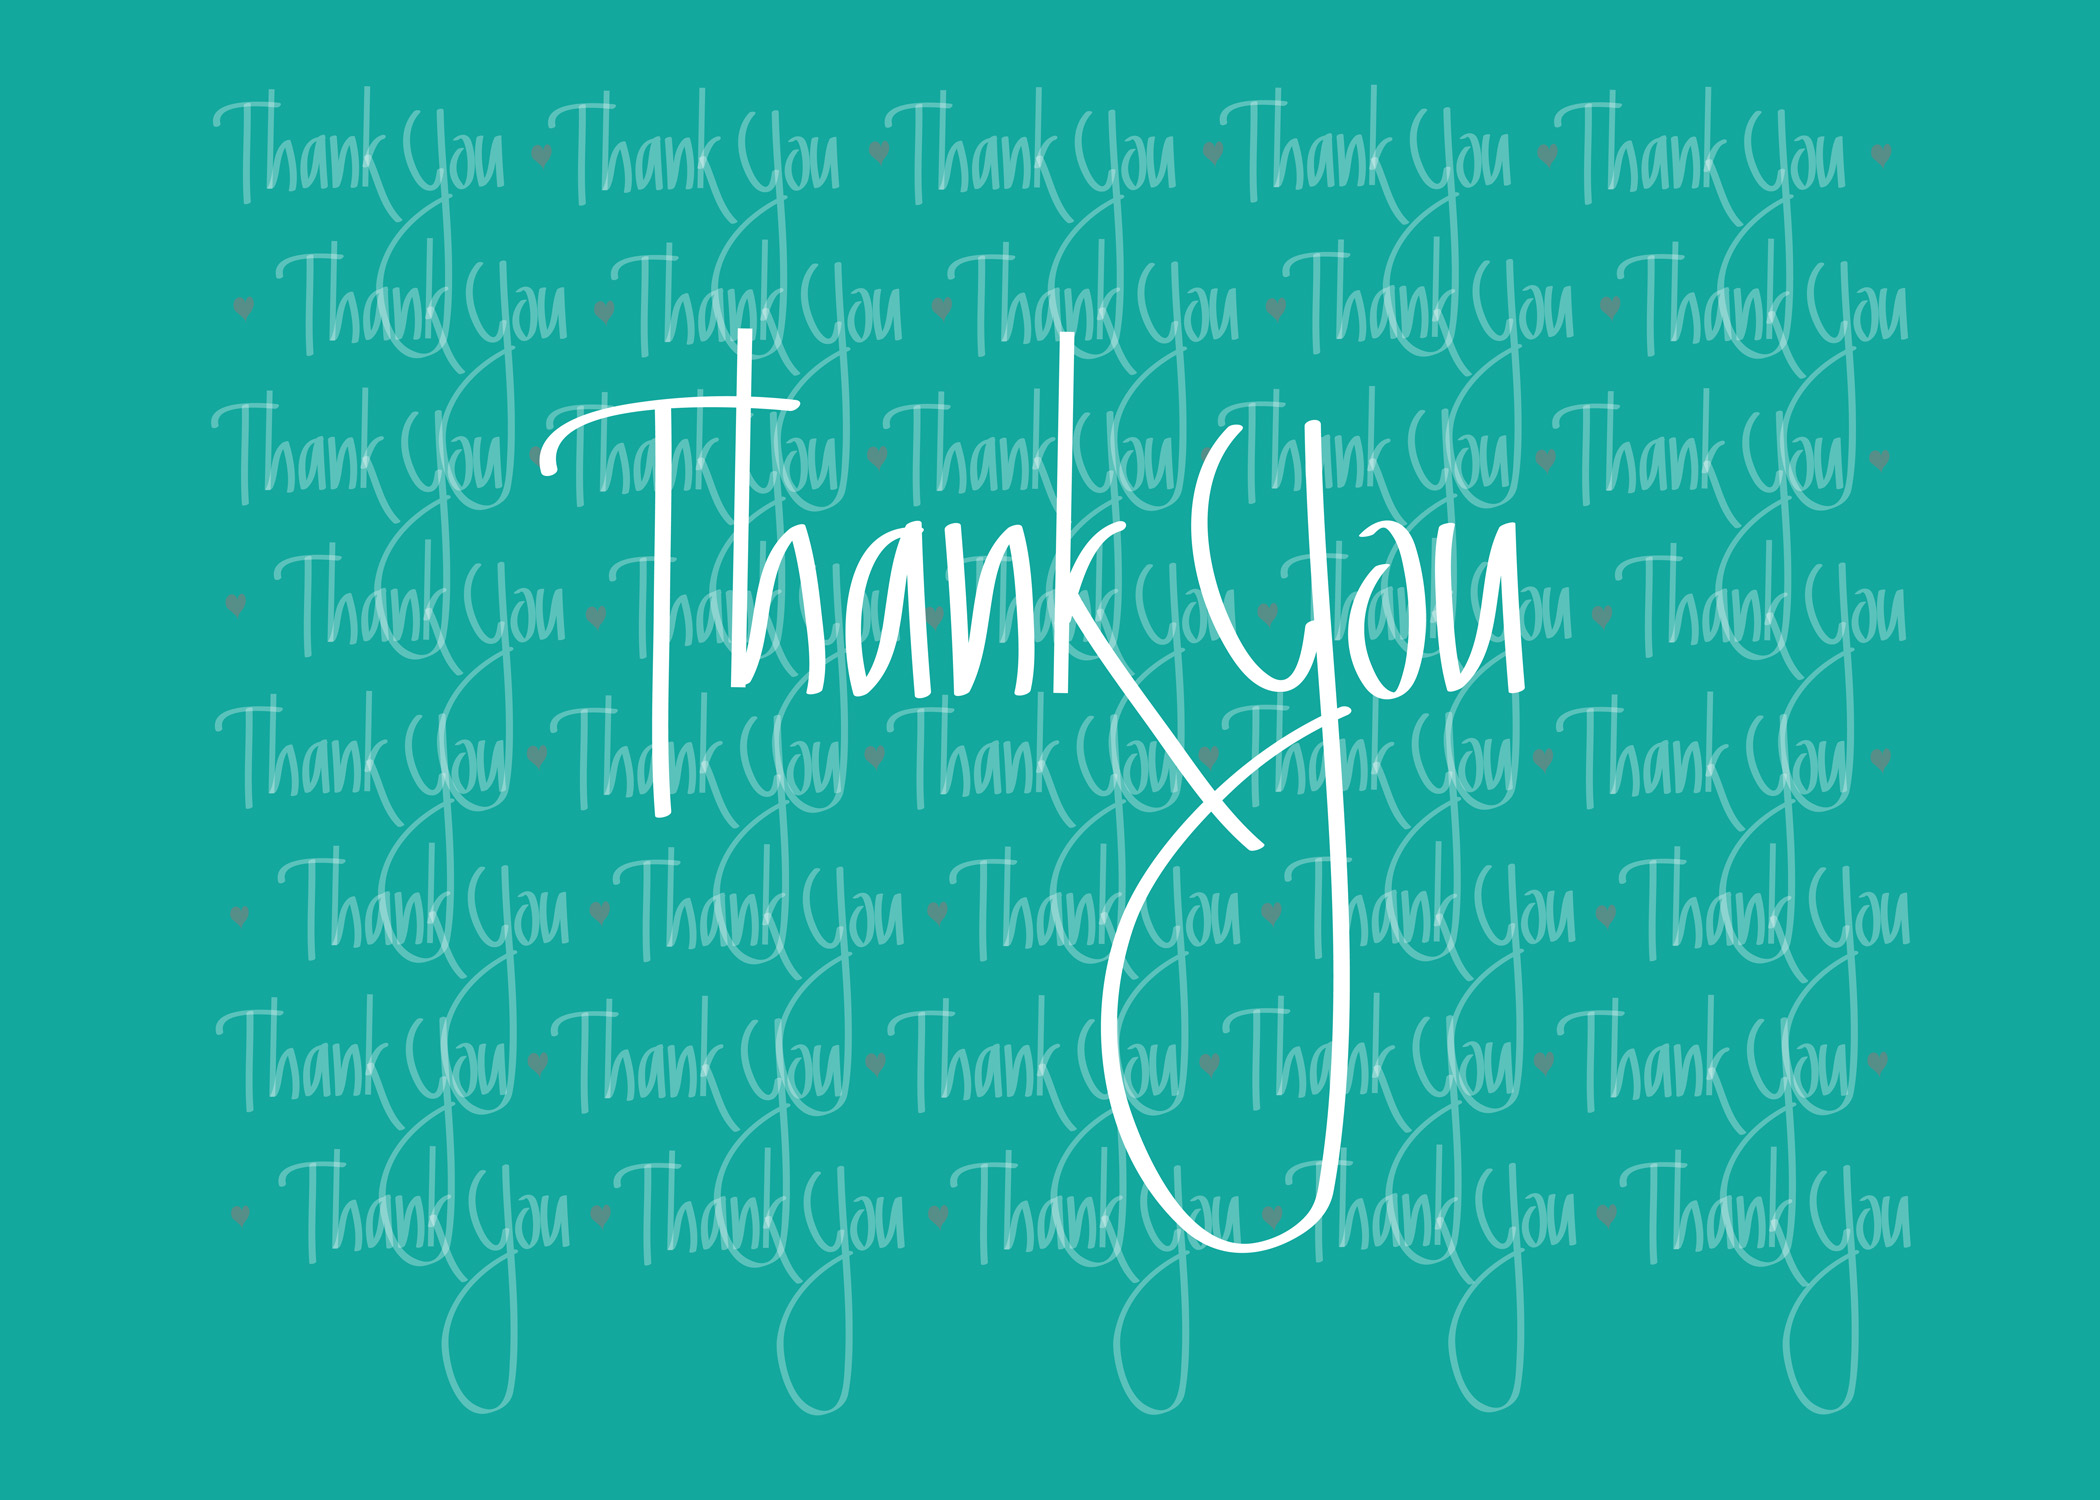 Thank You with thank you Teal FINAL revised